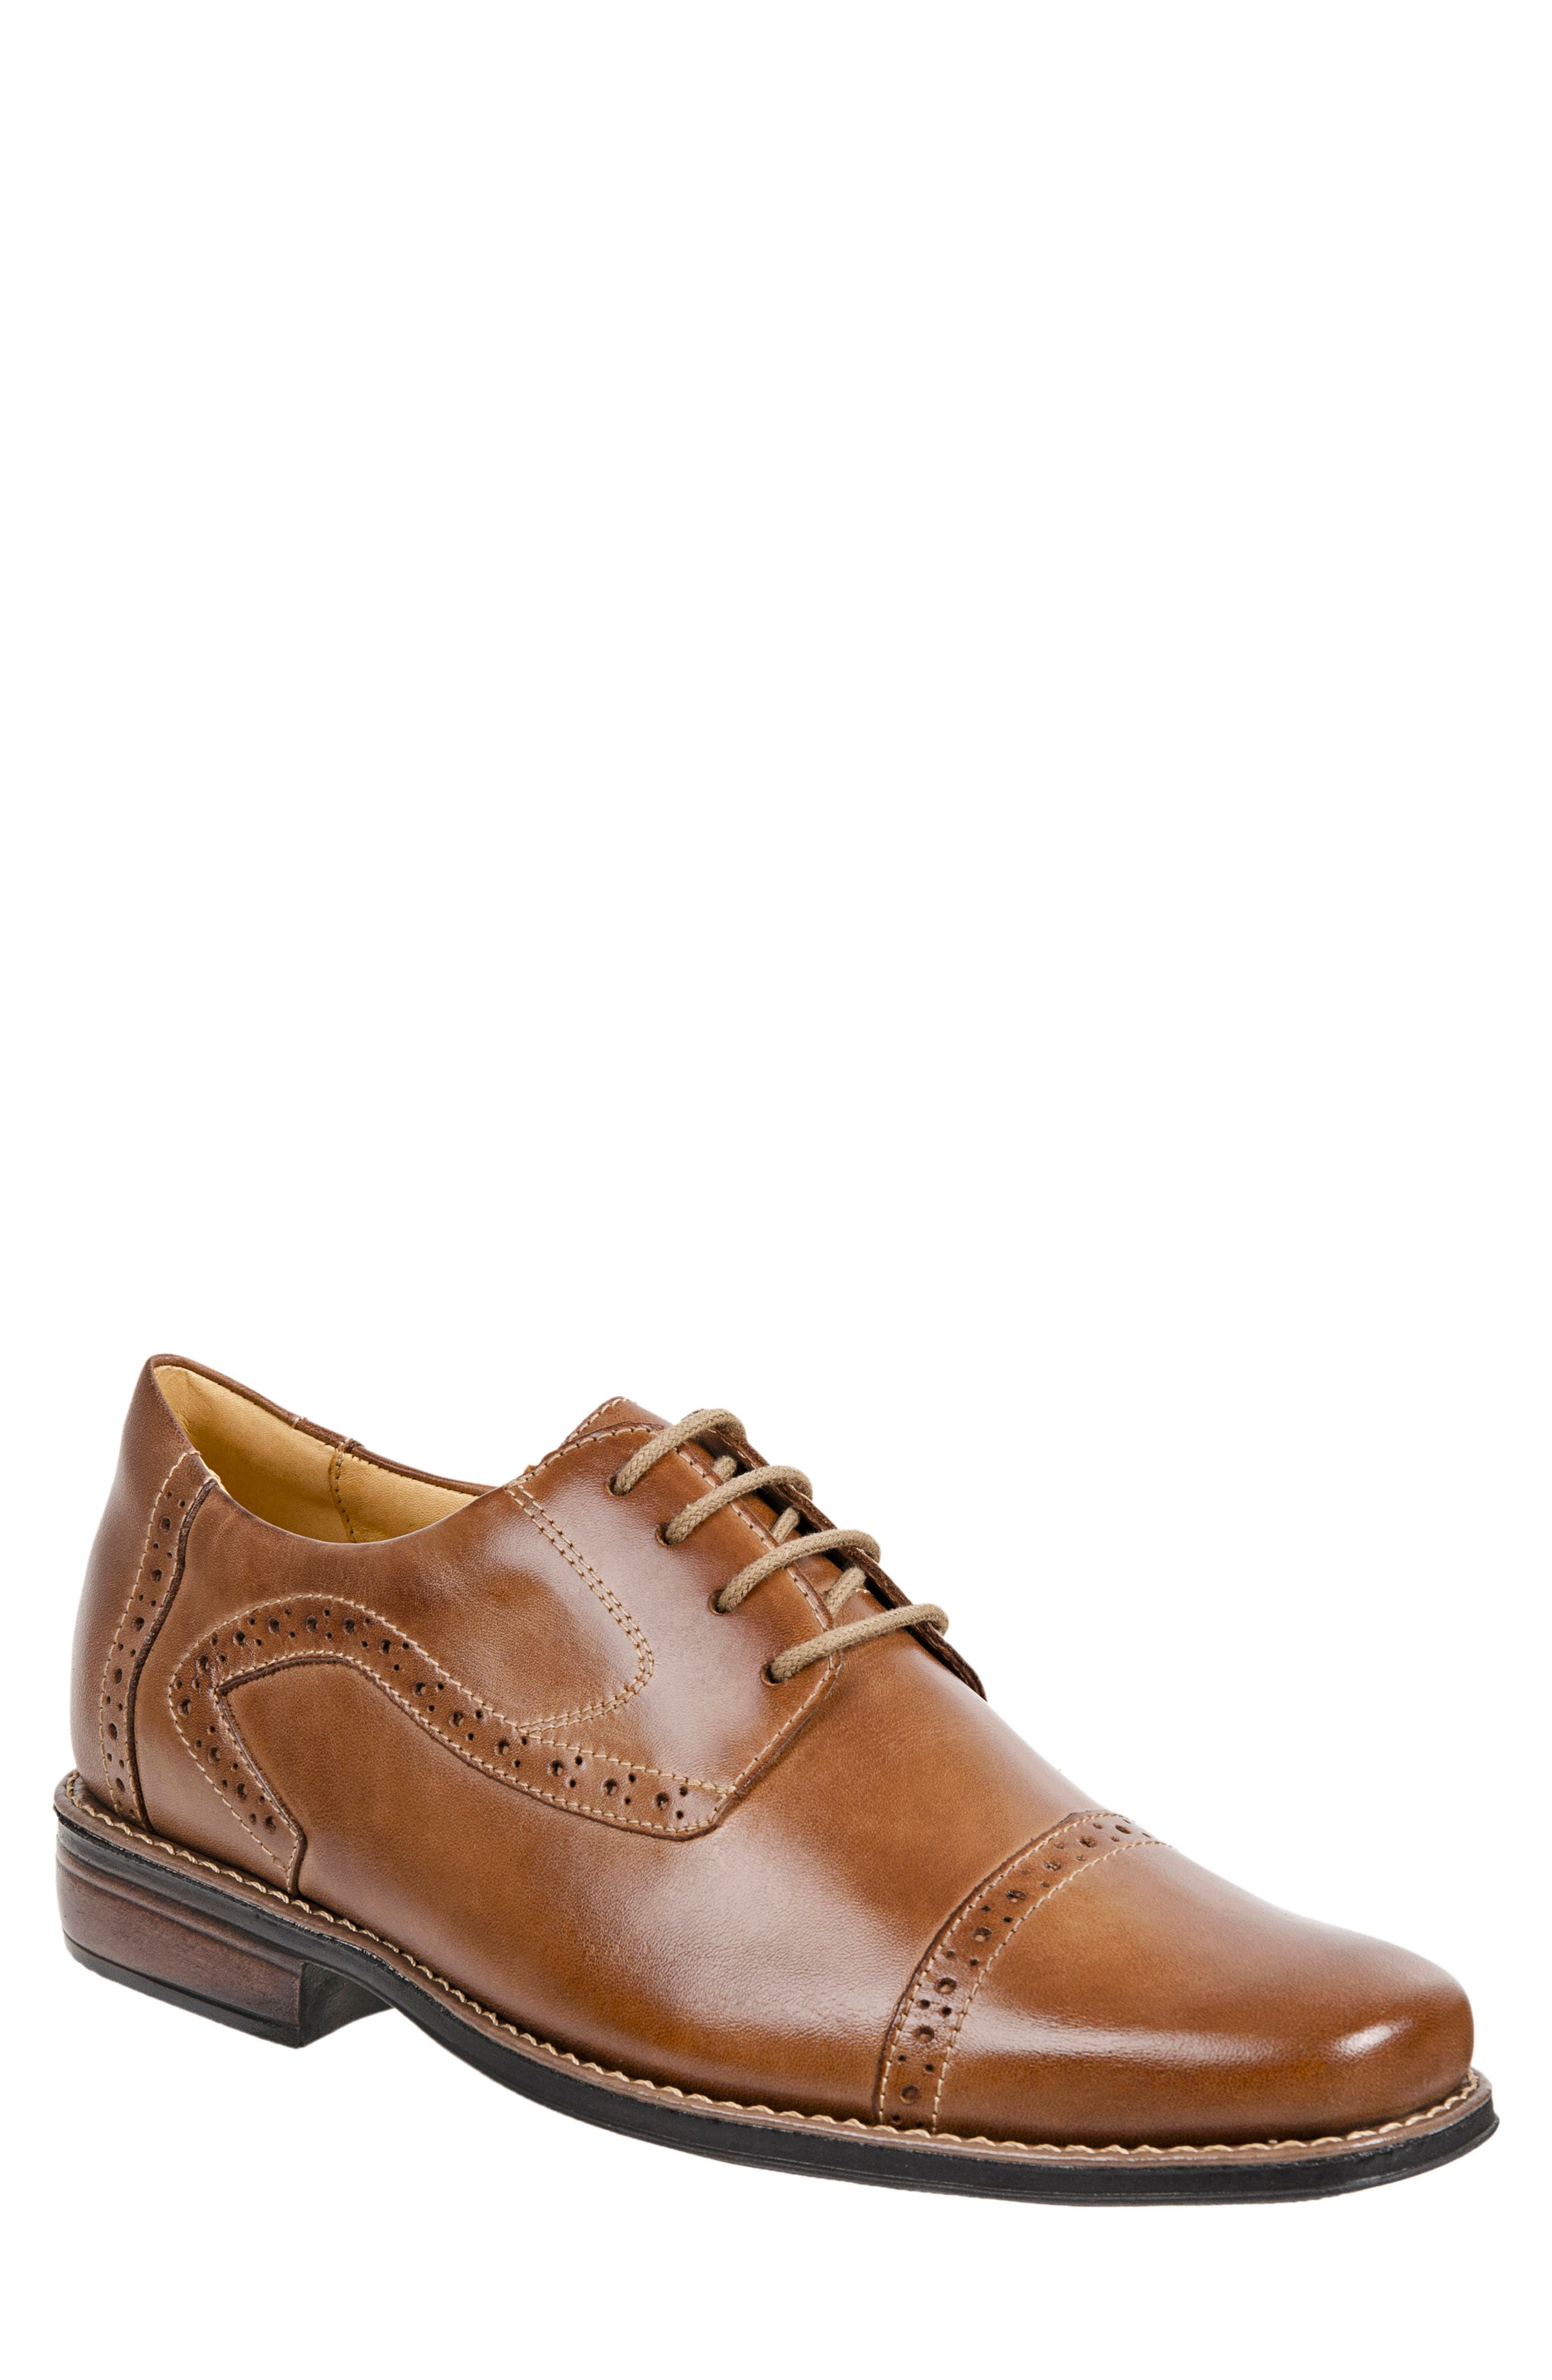 Meticulous tonal topstitching and welt detailing define a handsome oxford shaped from supple leather and clad in classic brogue stamping atop the toe. Style Name: Sandro Moscoloni \\\'Bruce\\\' Oxford (Men). Style Number: 5107078 1. Available in stores.